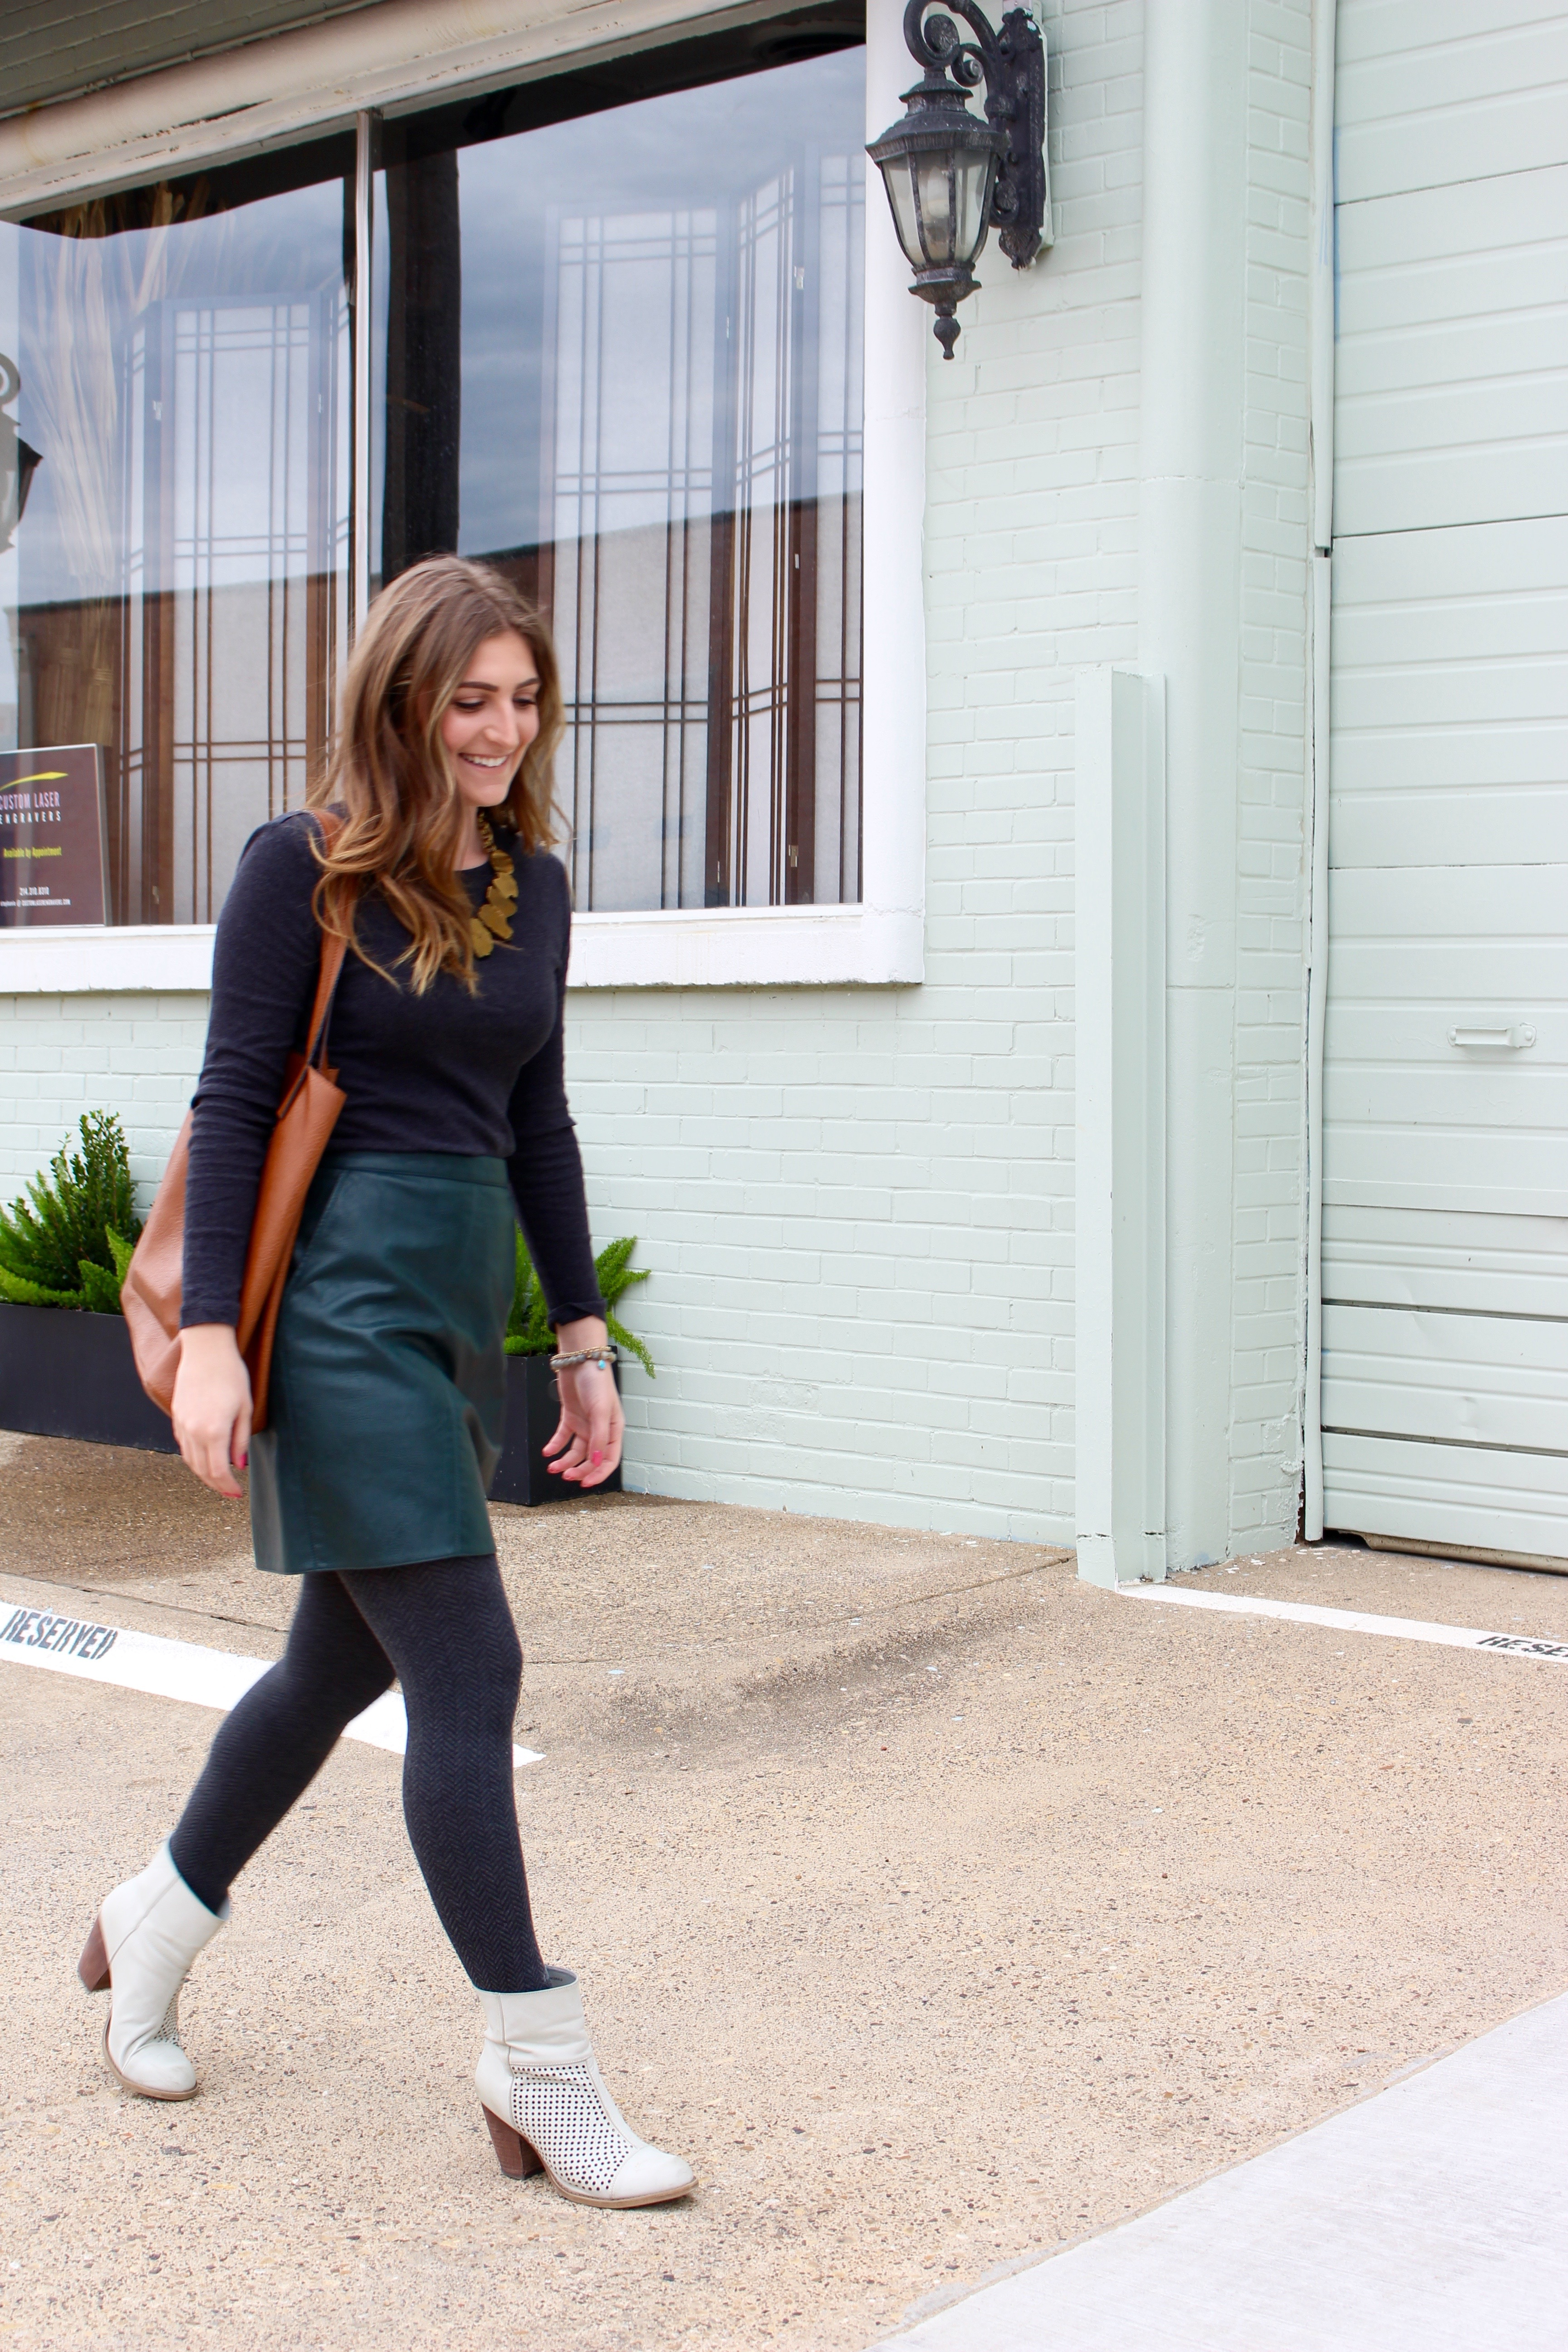 walking in dallas in a green leather skirt - Green Leather Skirt by popular Texas fashion blogger Audrey Madison Stowe